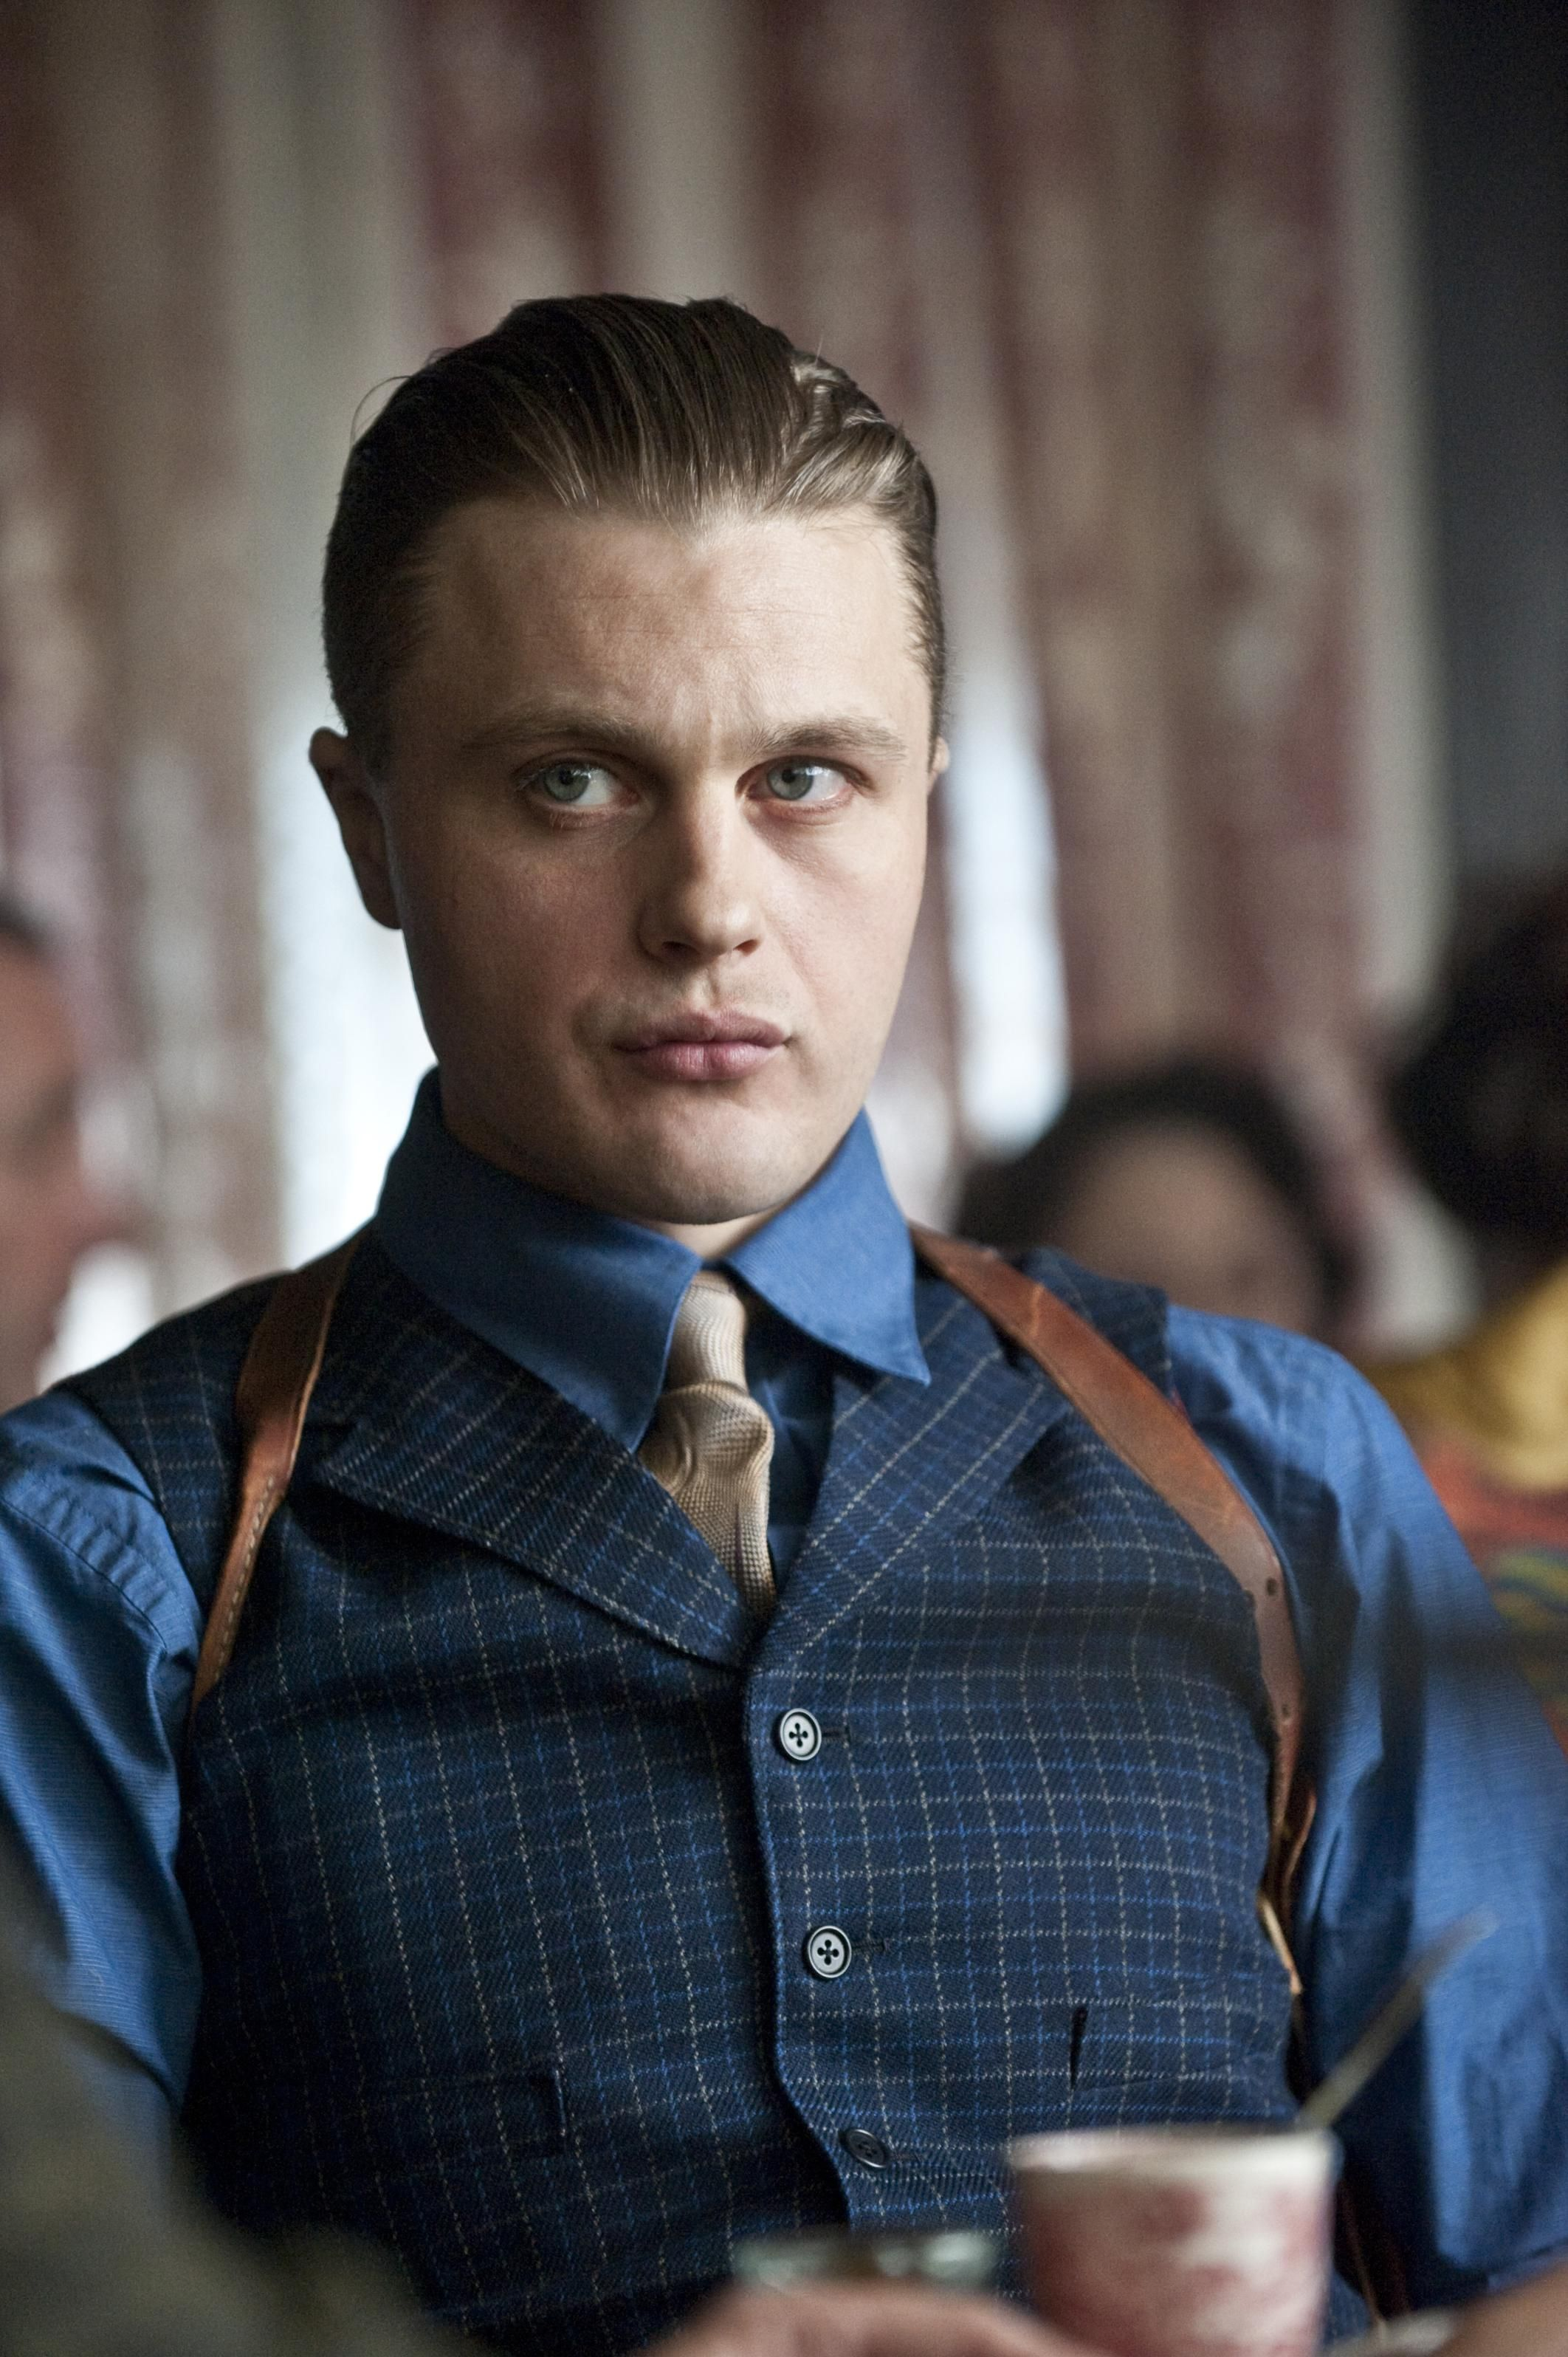 Coiffure Homme Vogue Jimmy Darmody Jimmy Darmody Fashion Jimmy Darmody Et